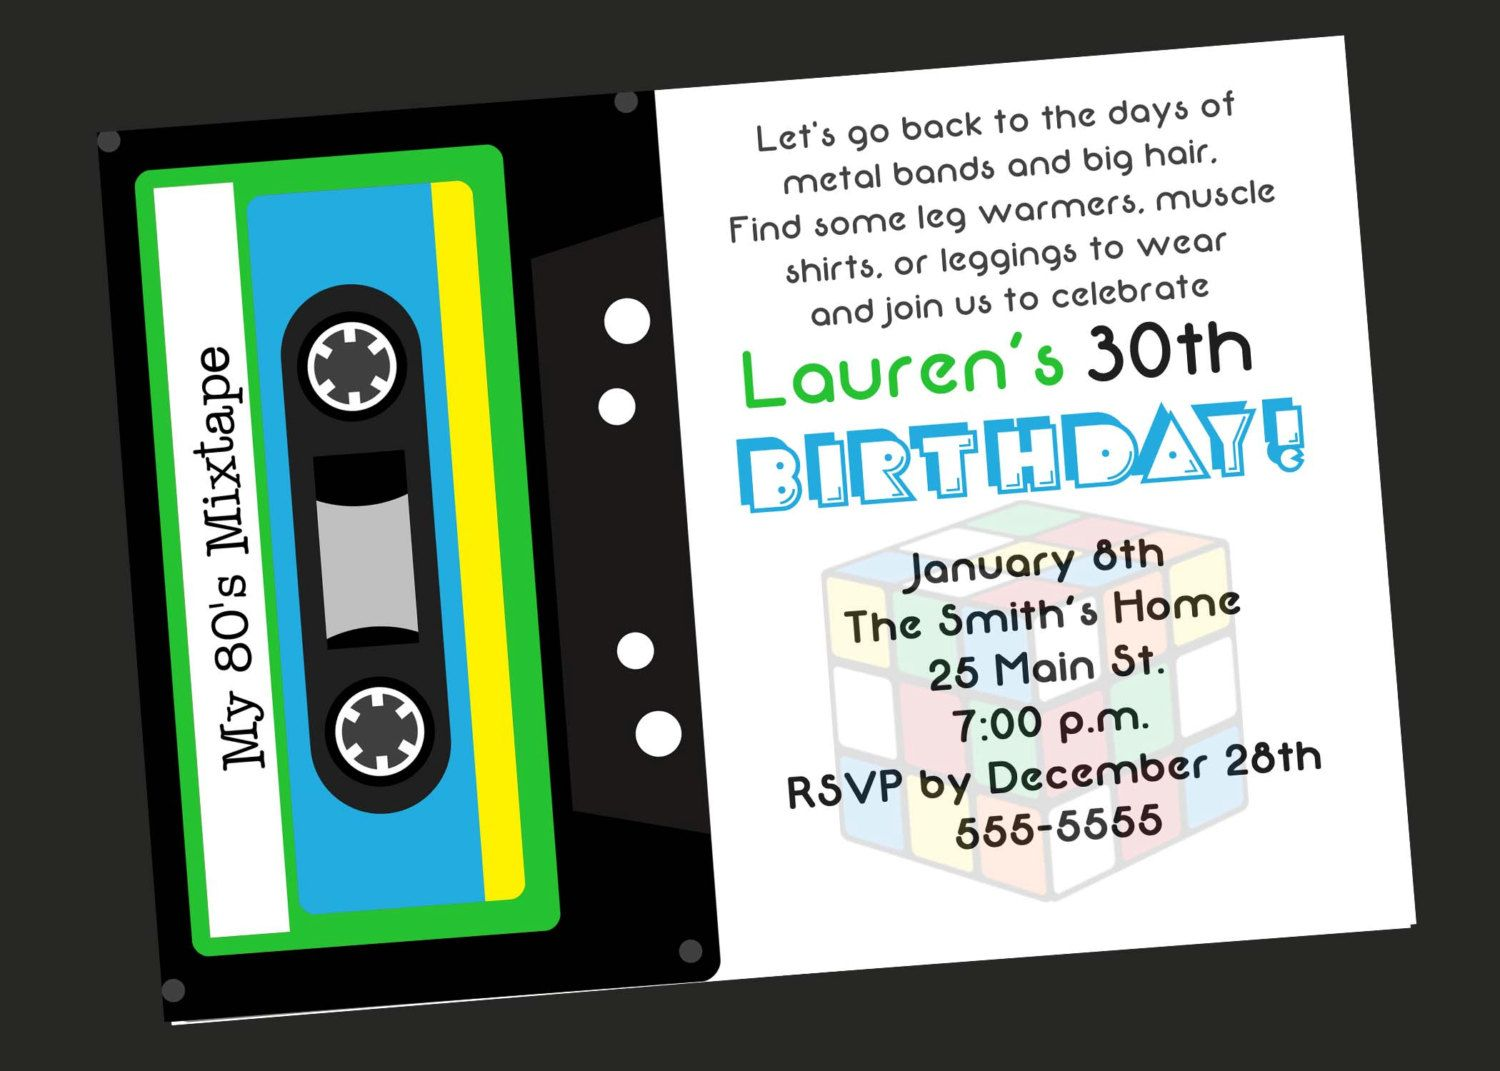 80s party invitation ideas 80s theme 30th birthday party 80s party invitation ideas 80s theme 30th birthday party invitation by simplyprintable filmwisefo